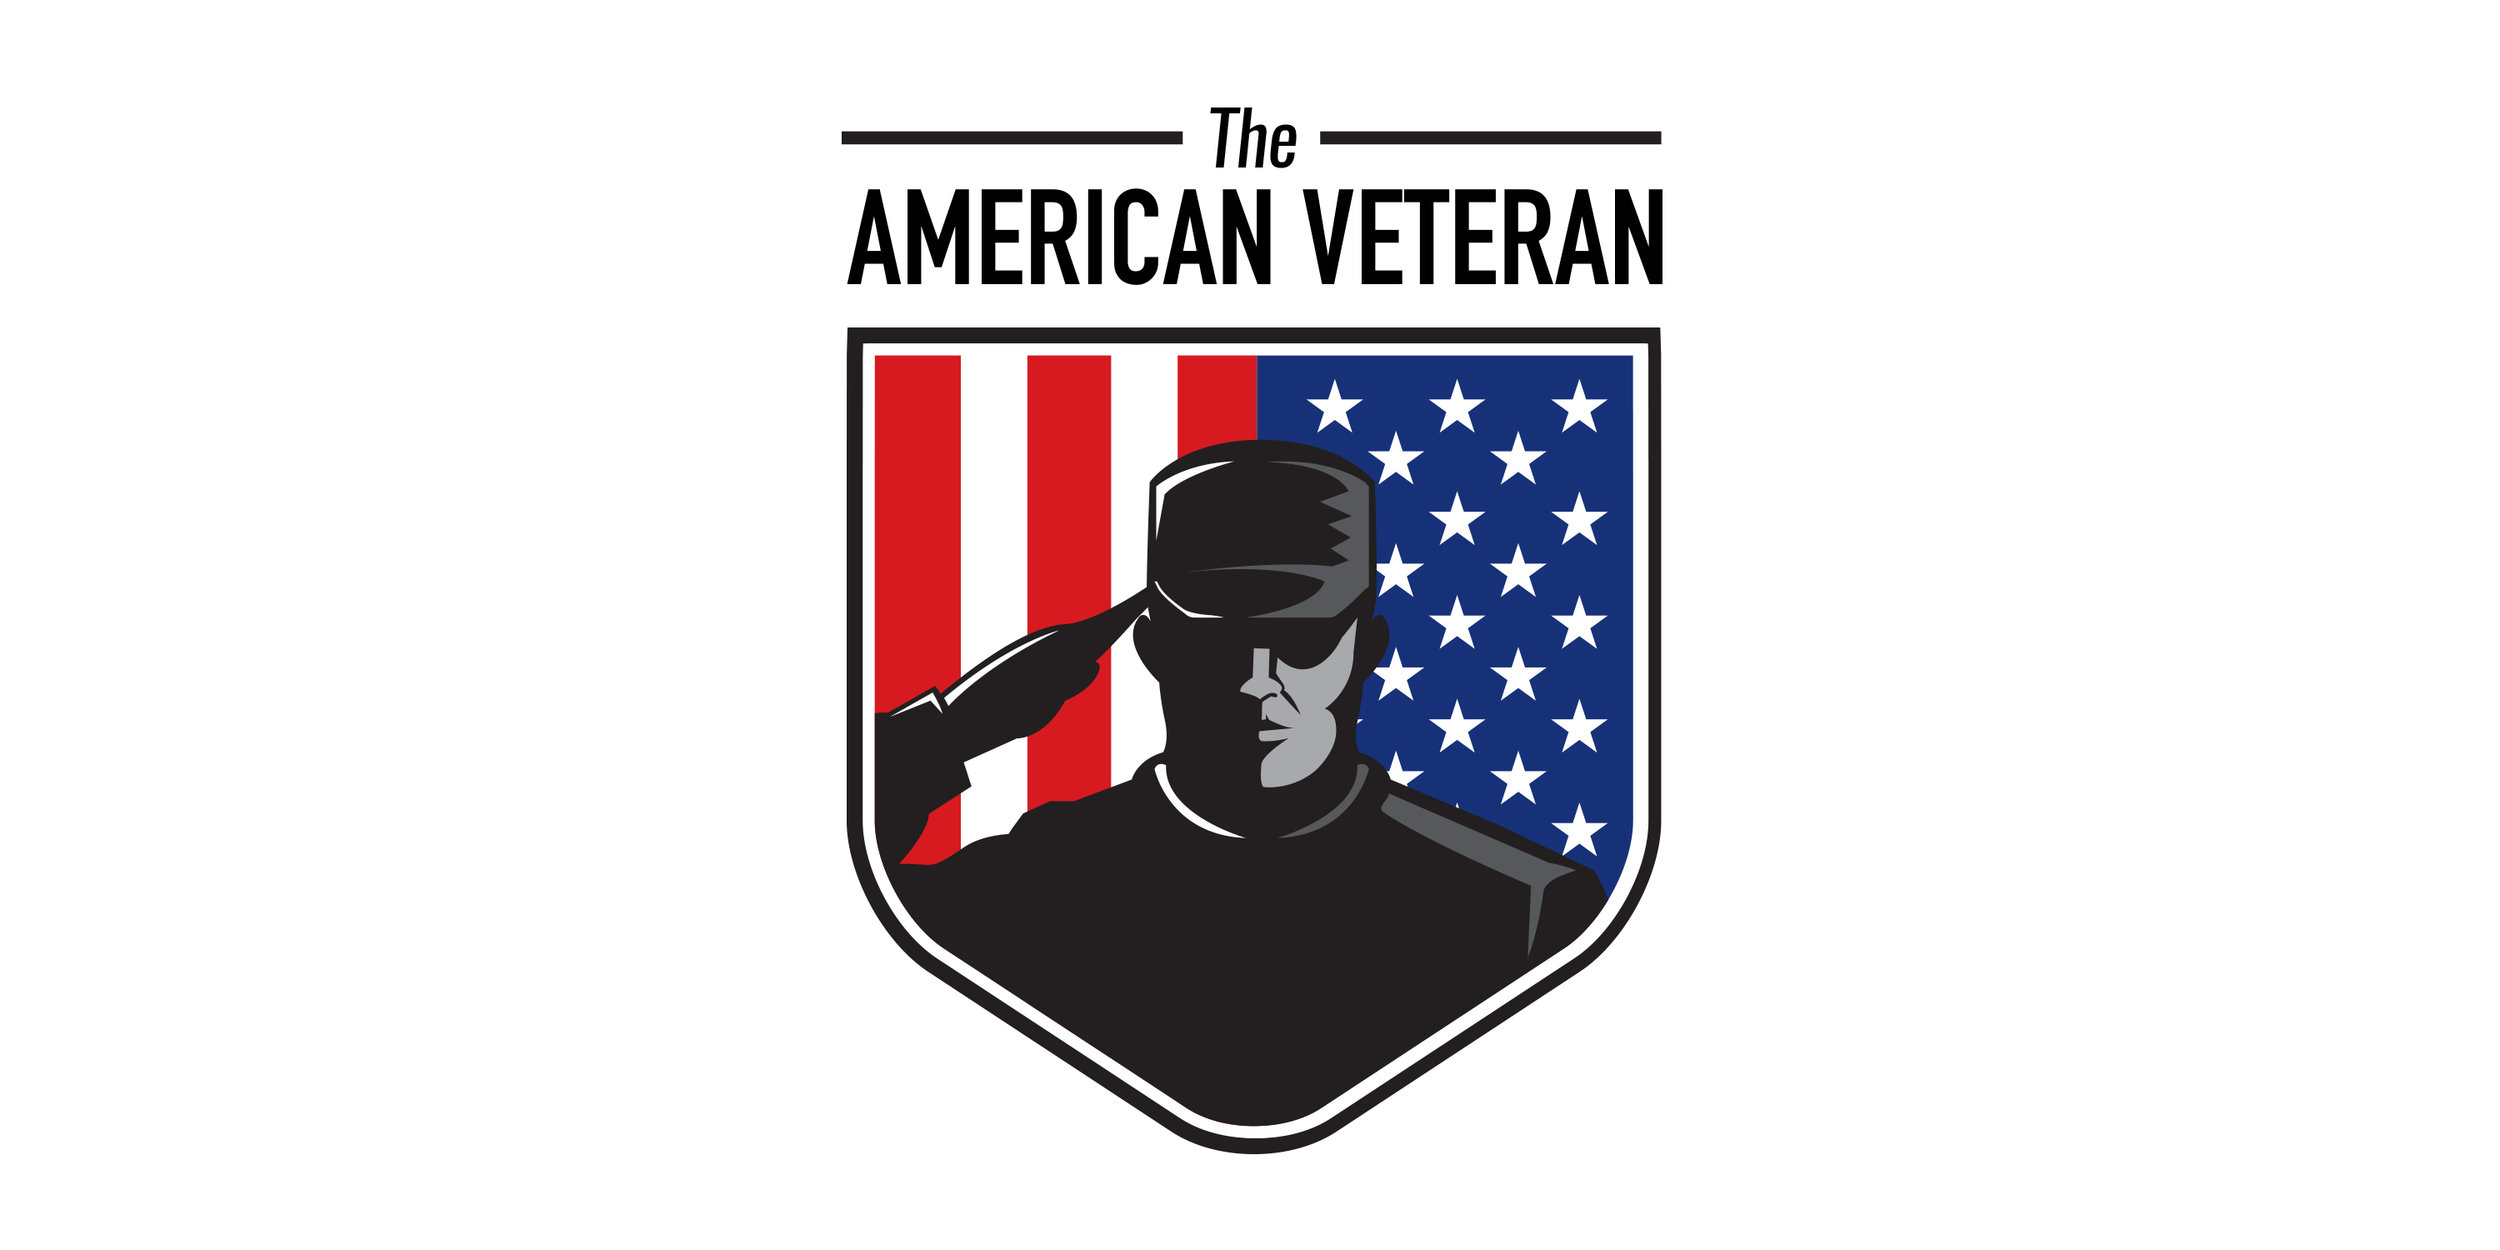 Web_Samples_AmericanVet_Logos_4.jpg